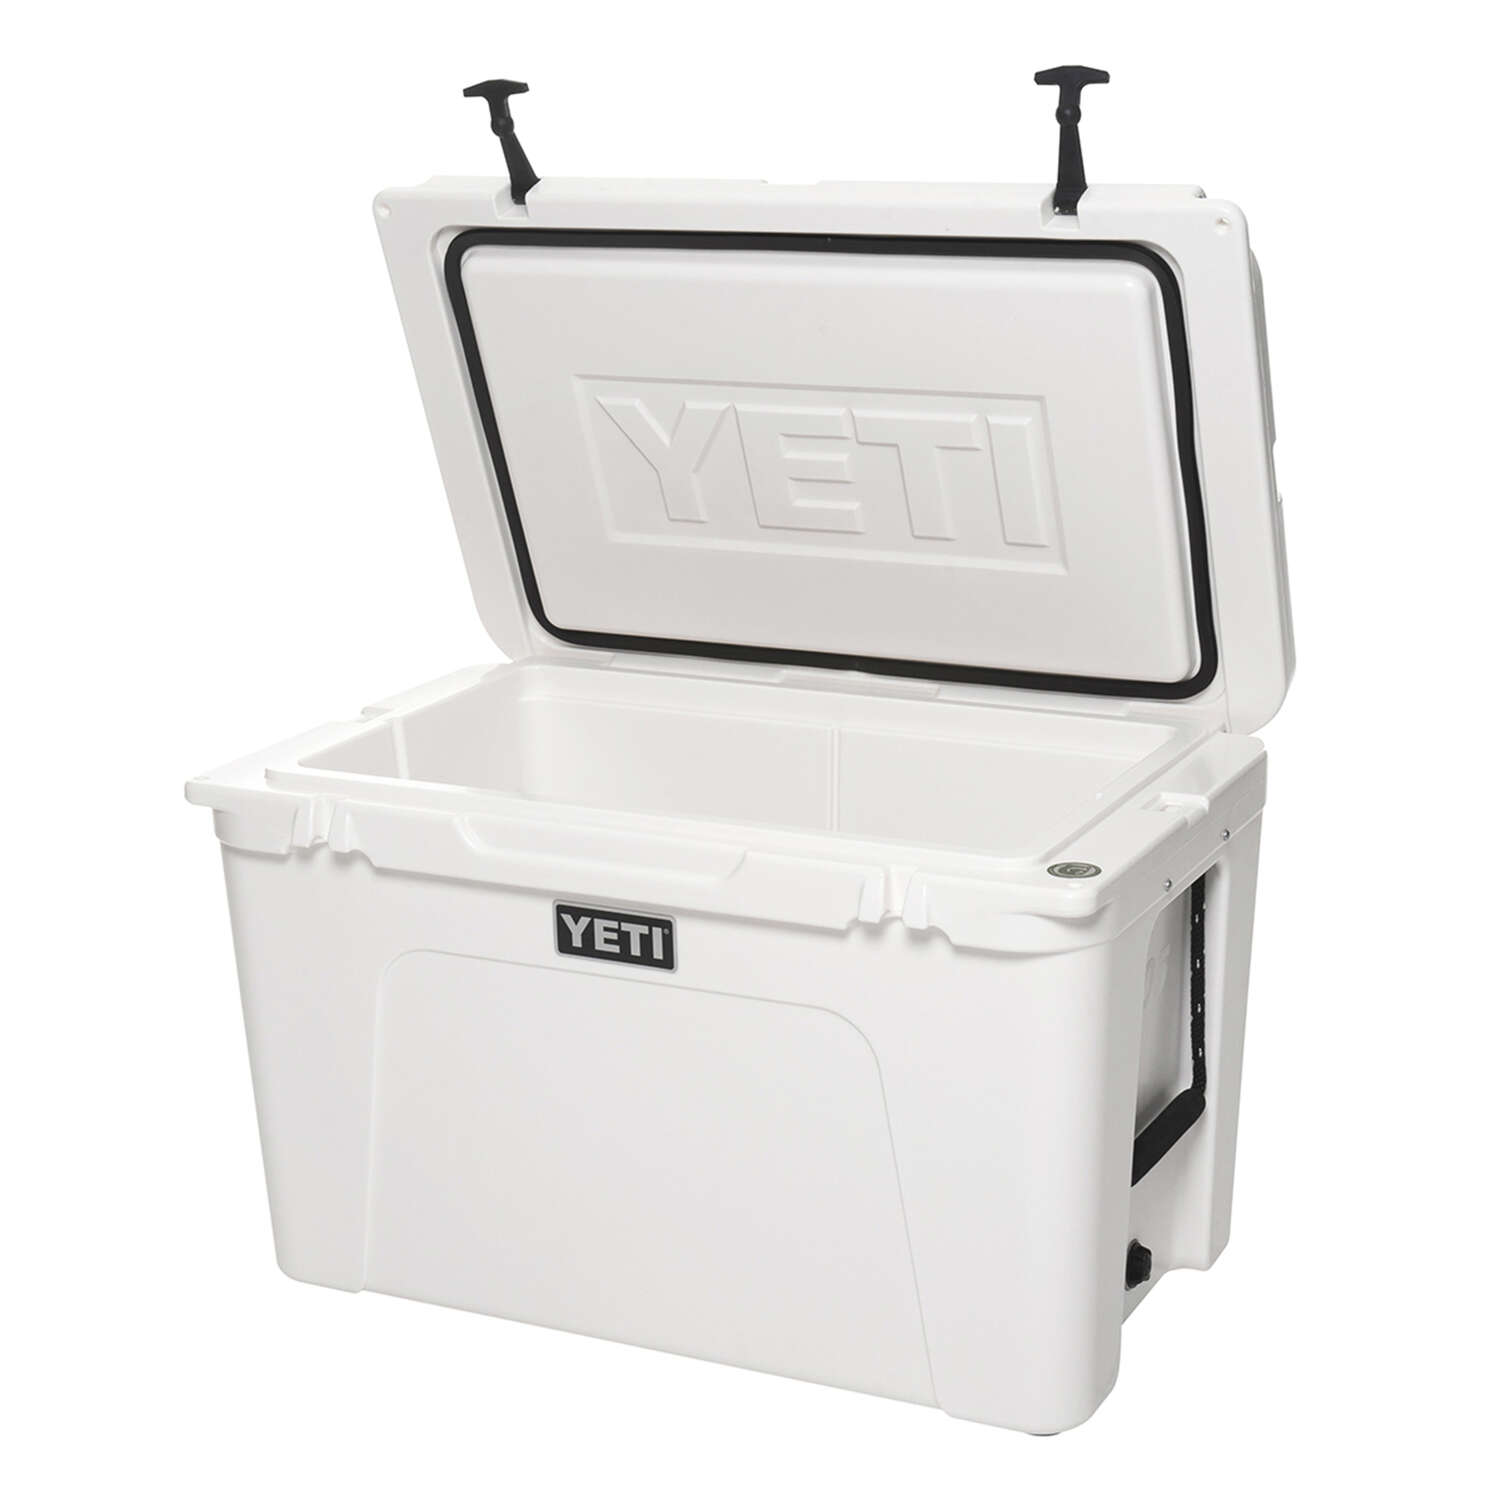 YETI  Tundra 105  Cooler  59 can White